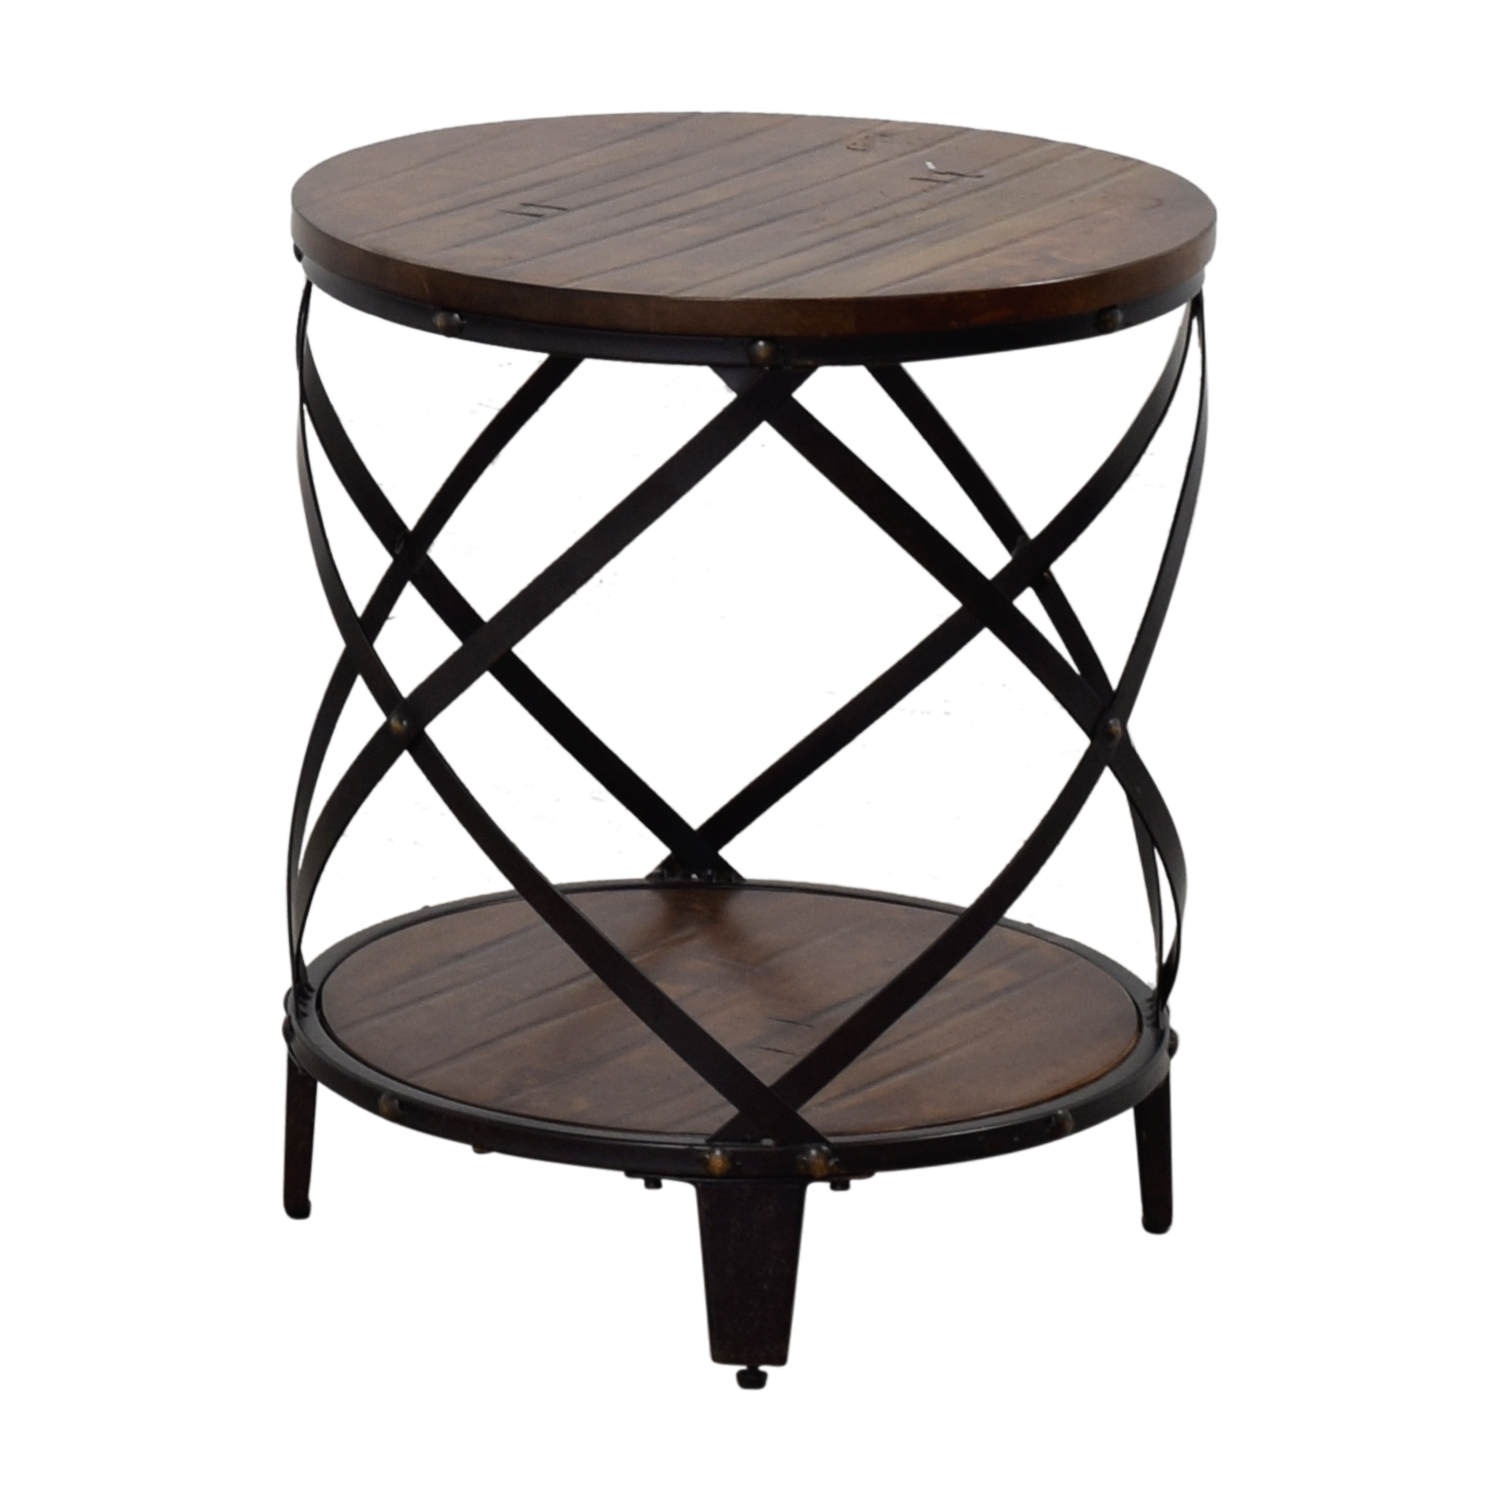 shop Steve Silver Steve Silver Round Wood and Metal End Table online